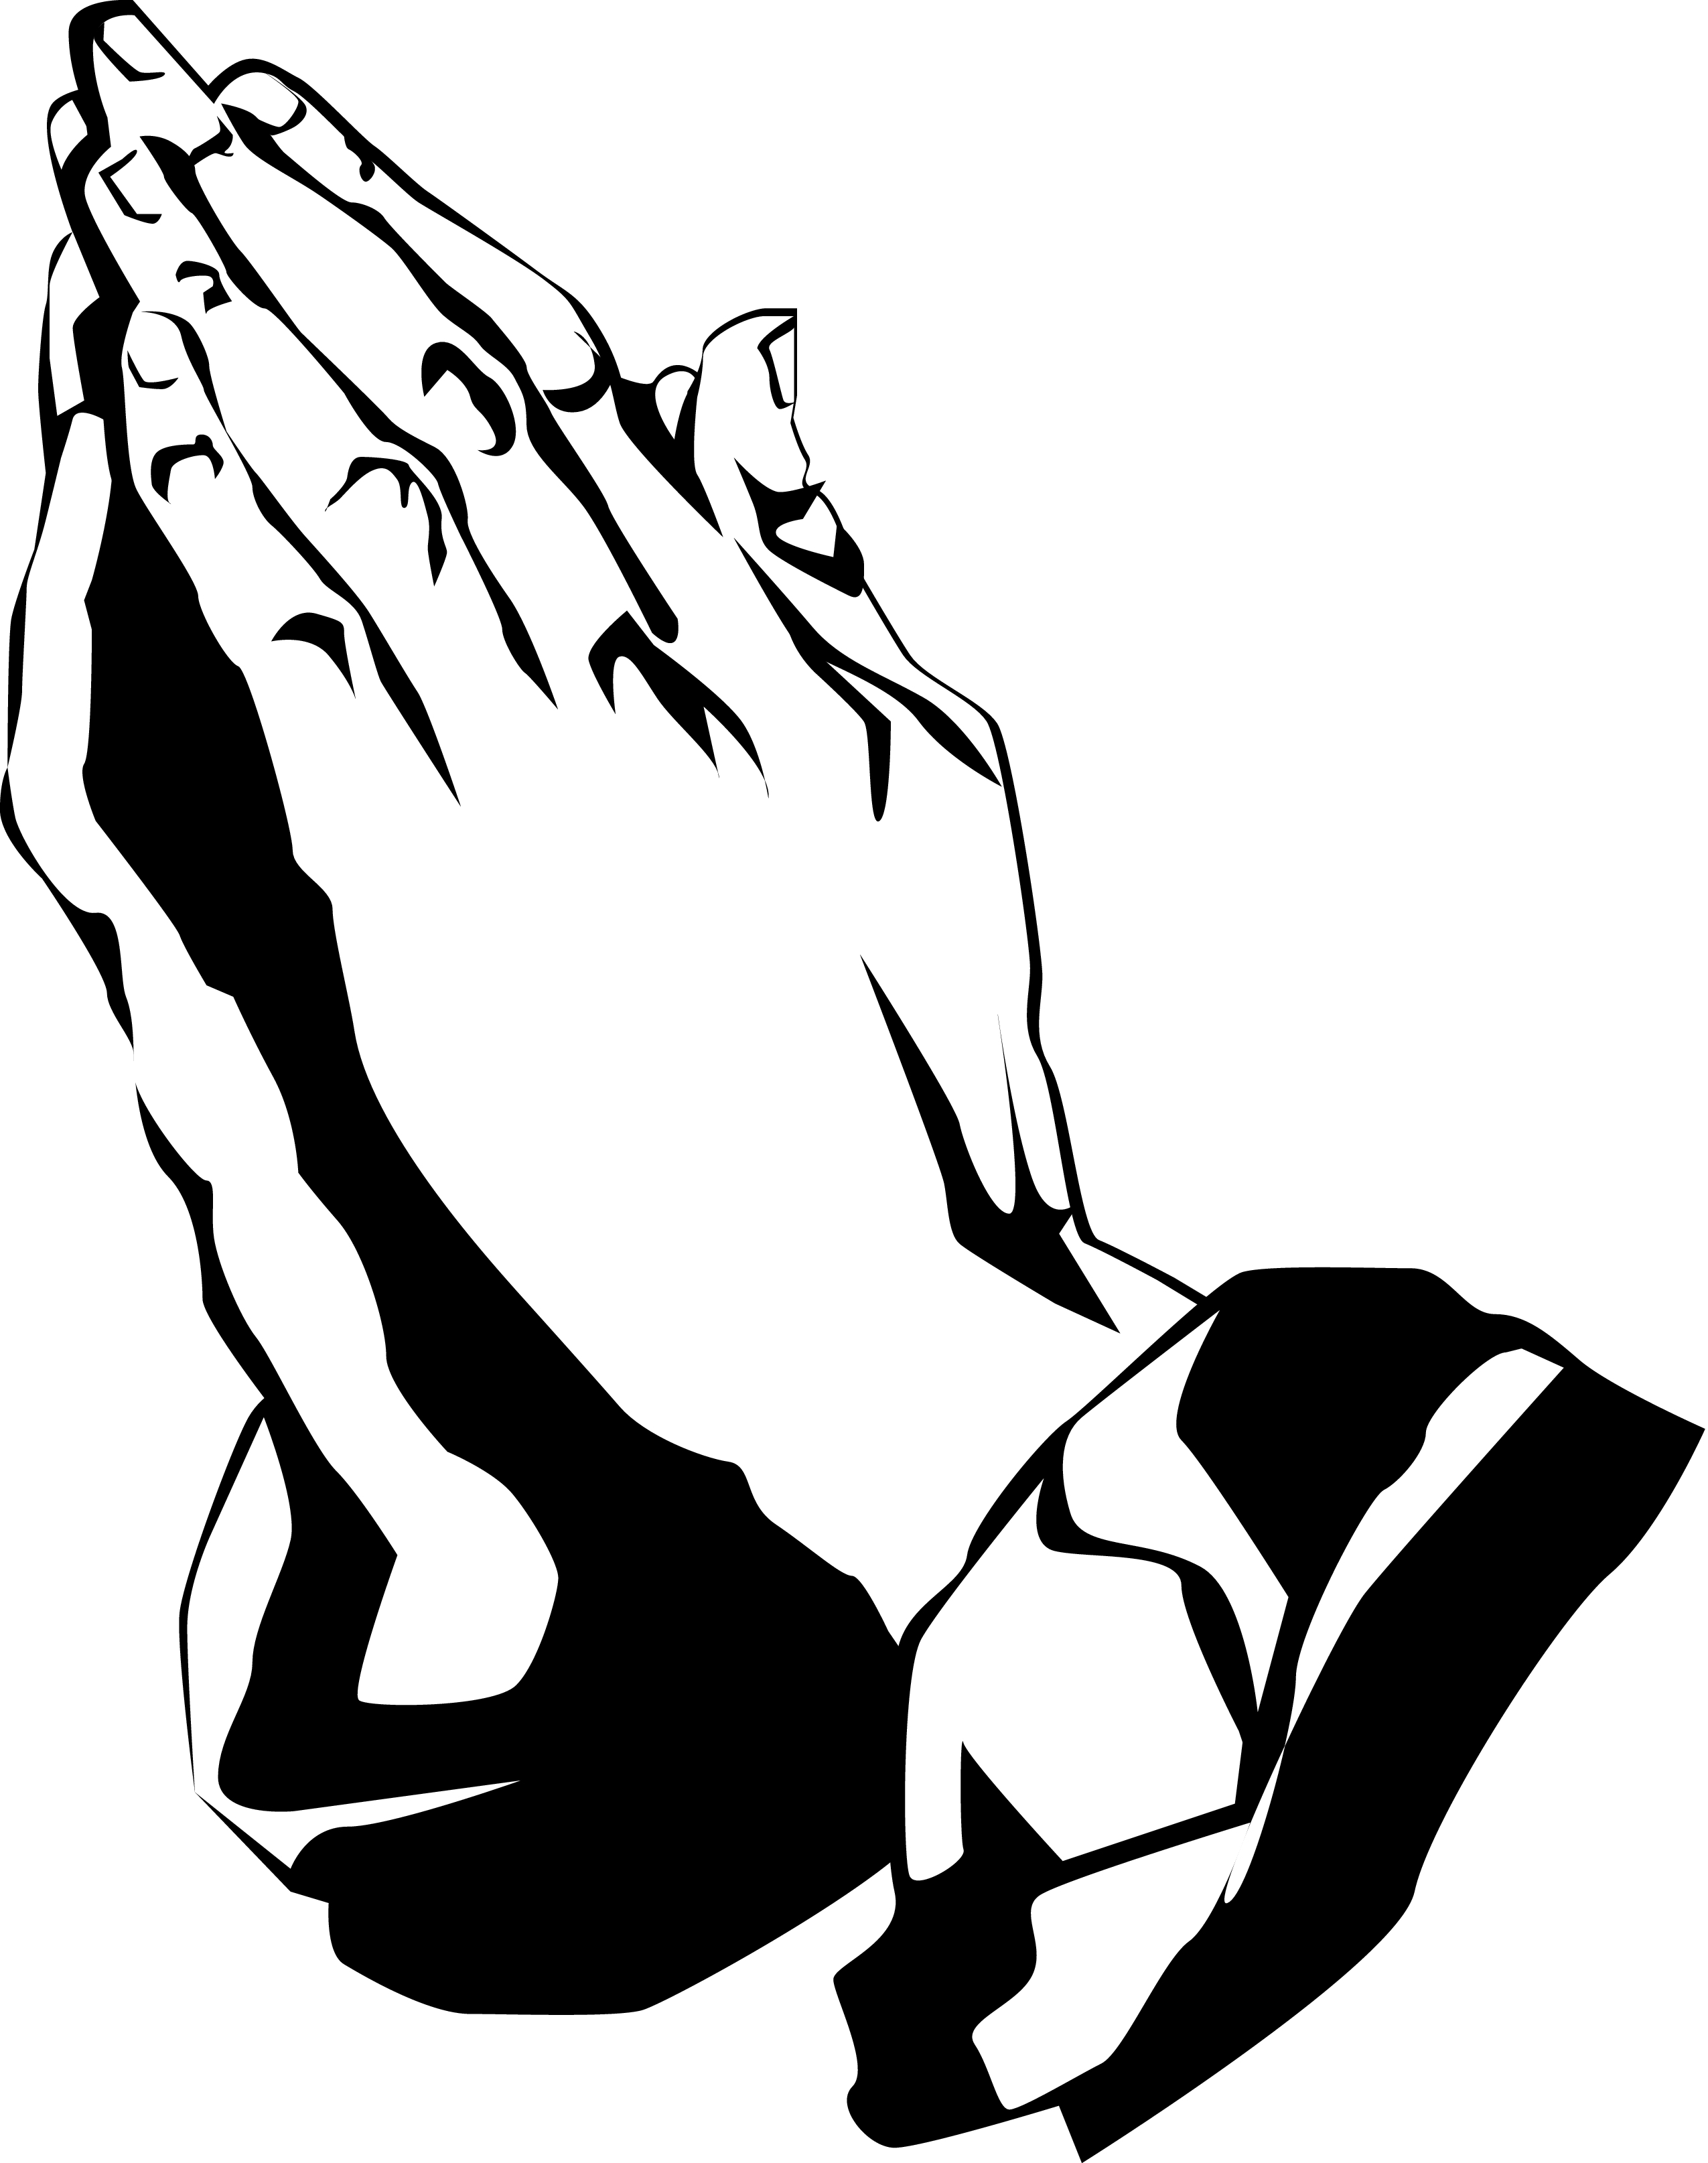 2550x3229 Praying Hands Line Drawing Praying Hands Clipart Praying Hands